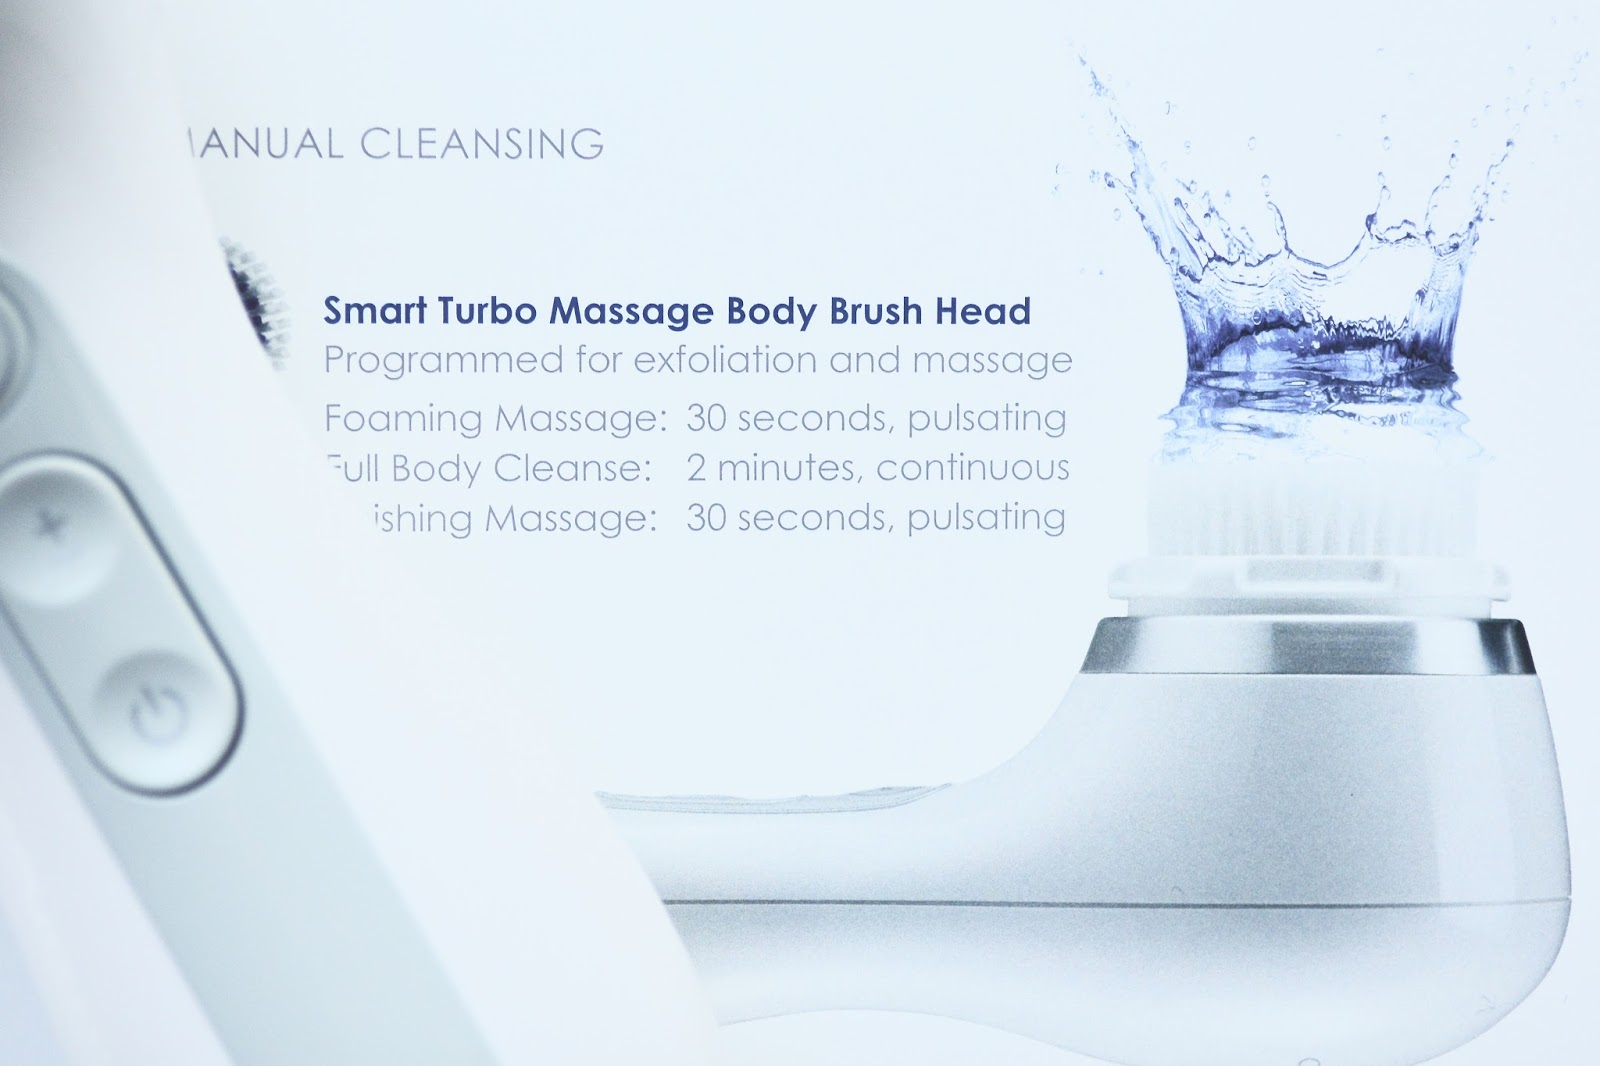 Clarisonic Smart Profile, Cleanse, Skincare, Smart Profile